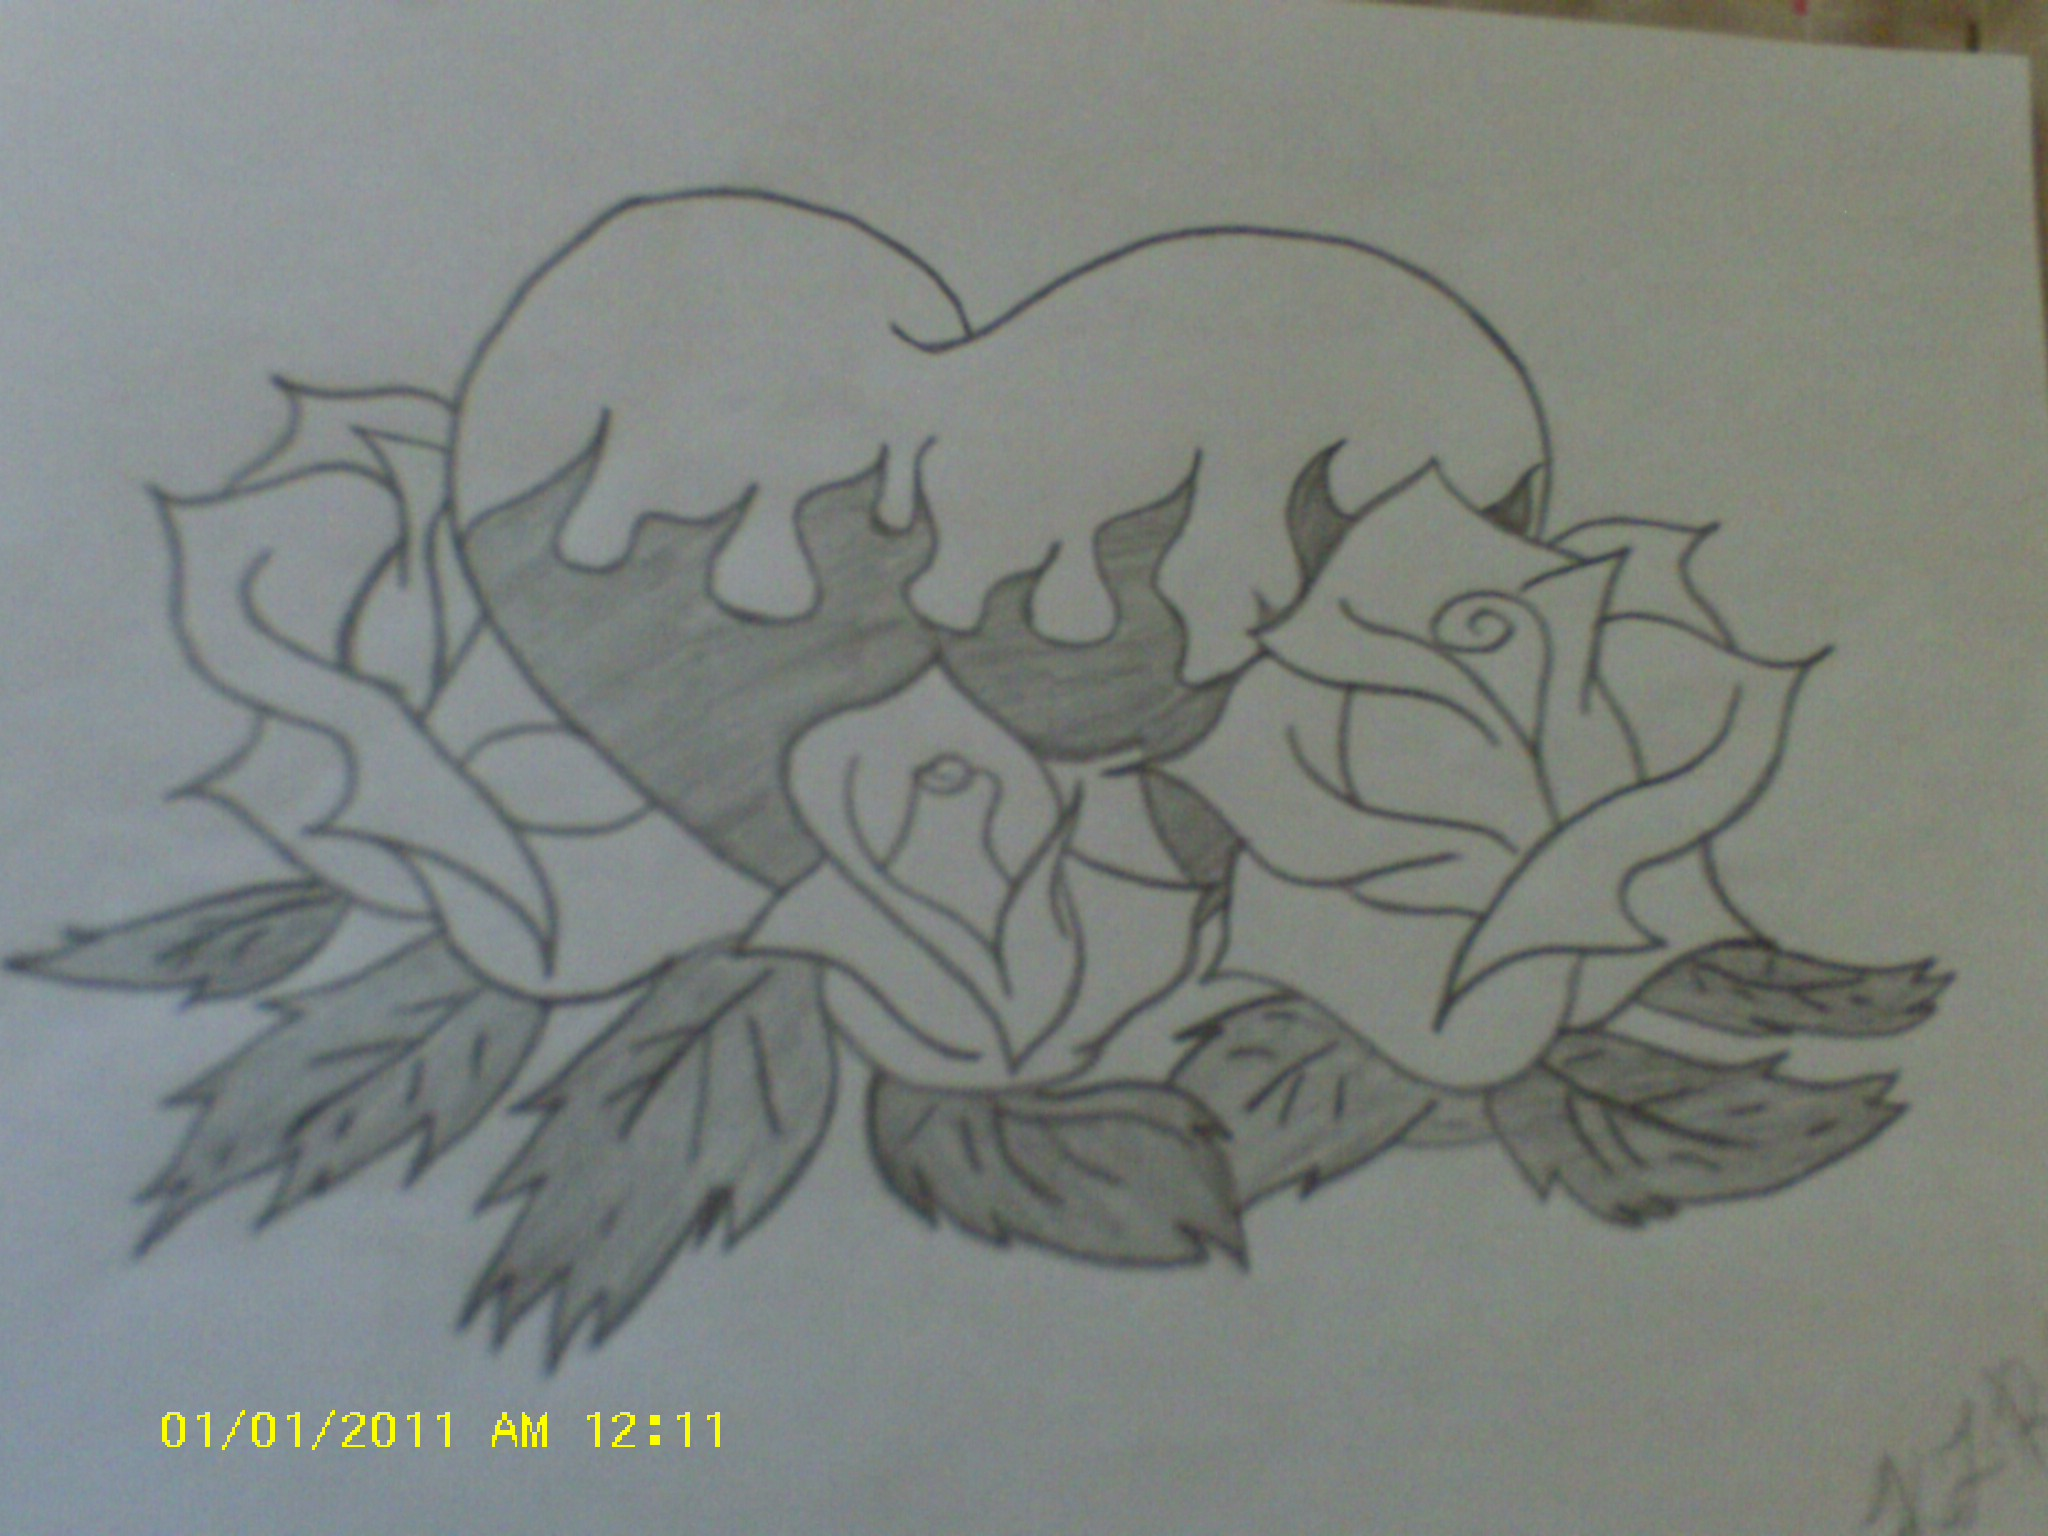 2048x1536 heart and rose drawings in pencil burning rose heart 1